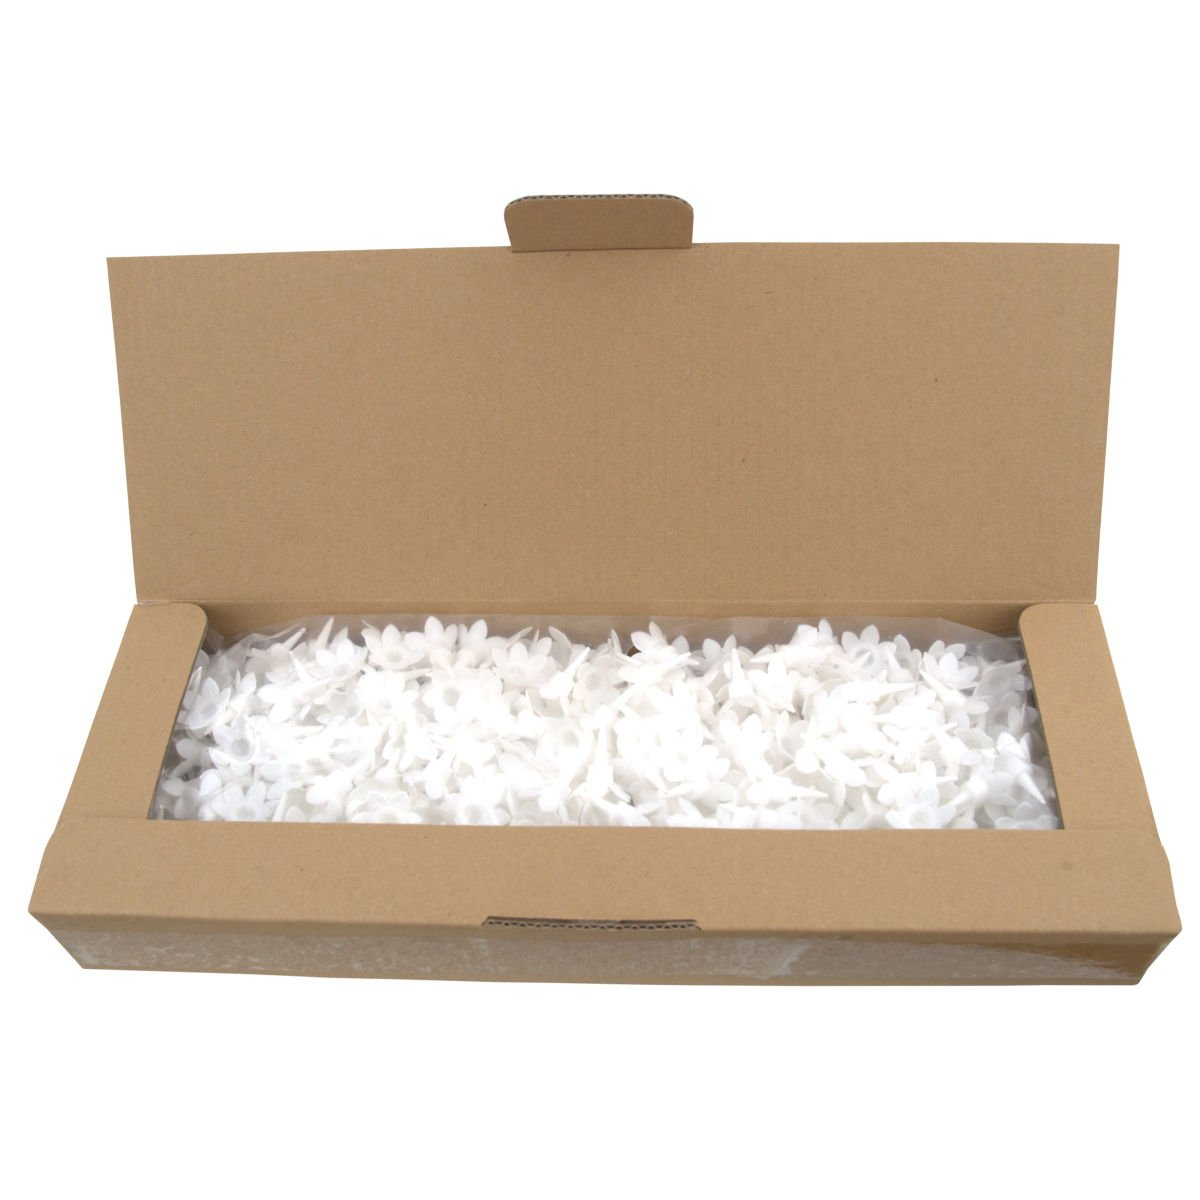 Bulk Pack of Plain Birthday Candles or Holders - Packs of 500 - Cake decoration accessories (White Candle Holders)